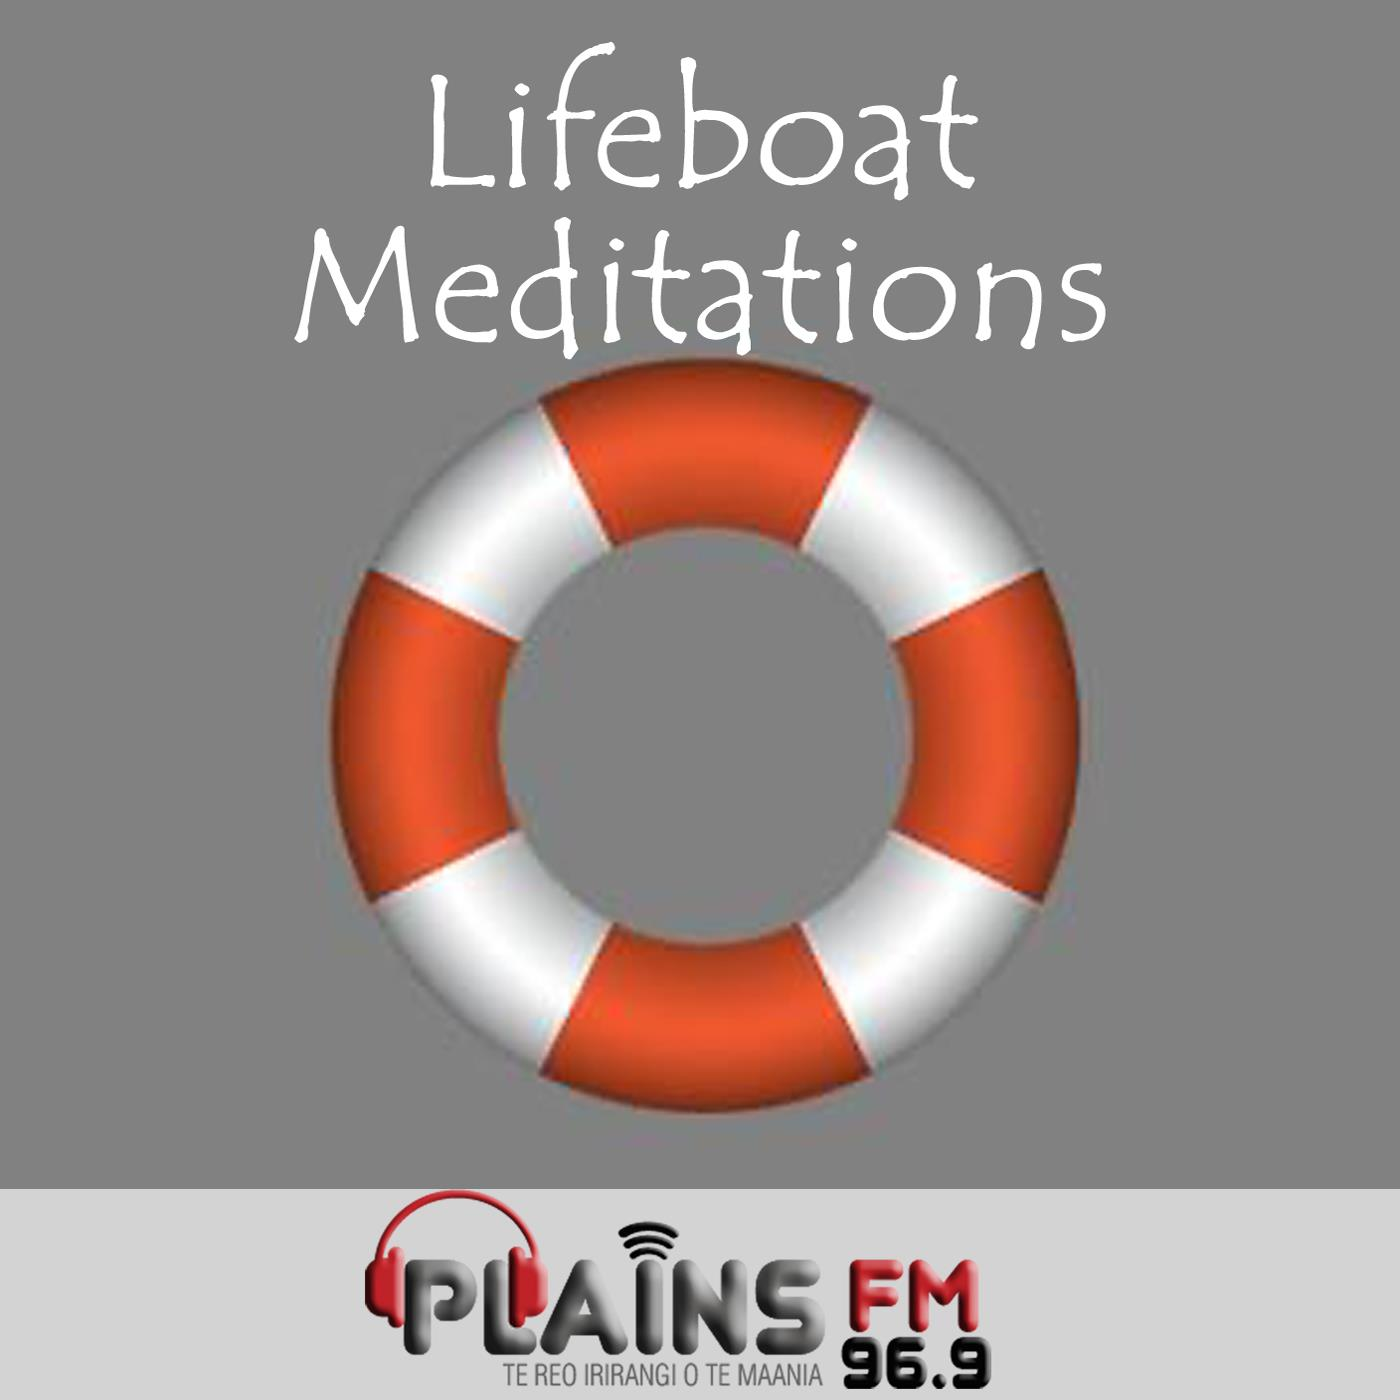 Lifeboat Meditations